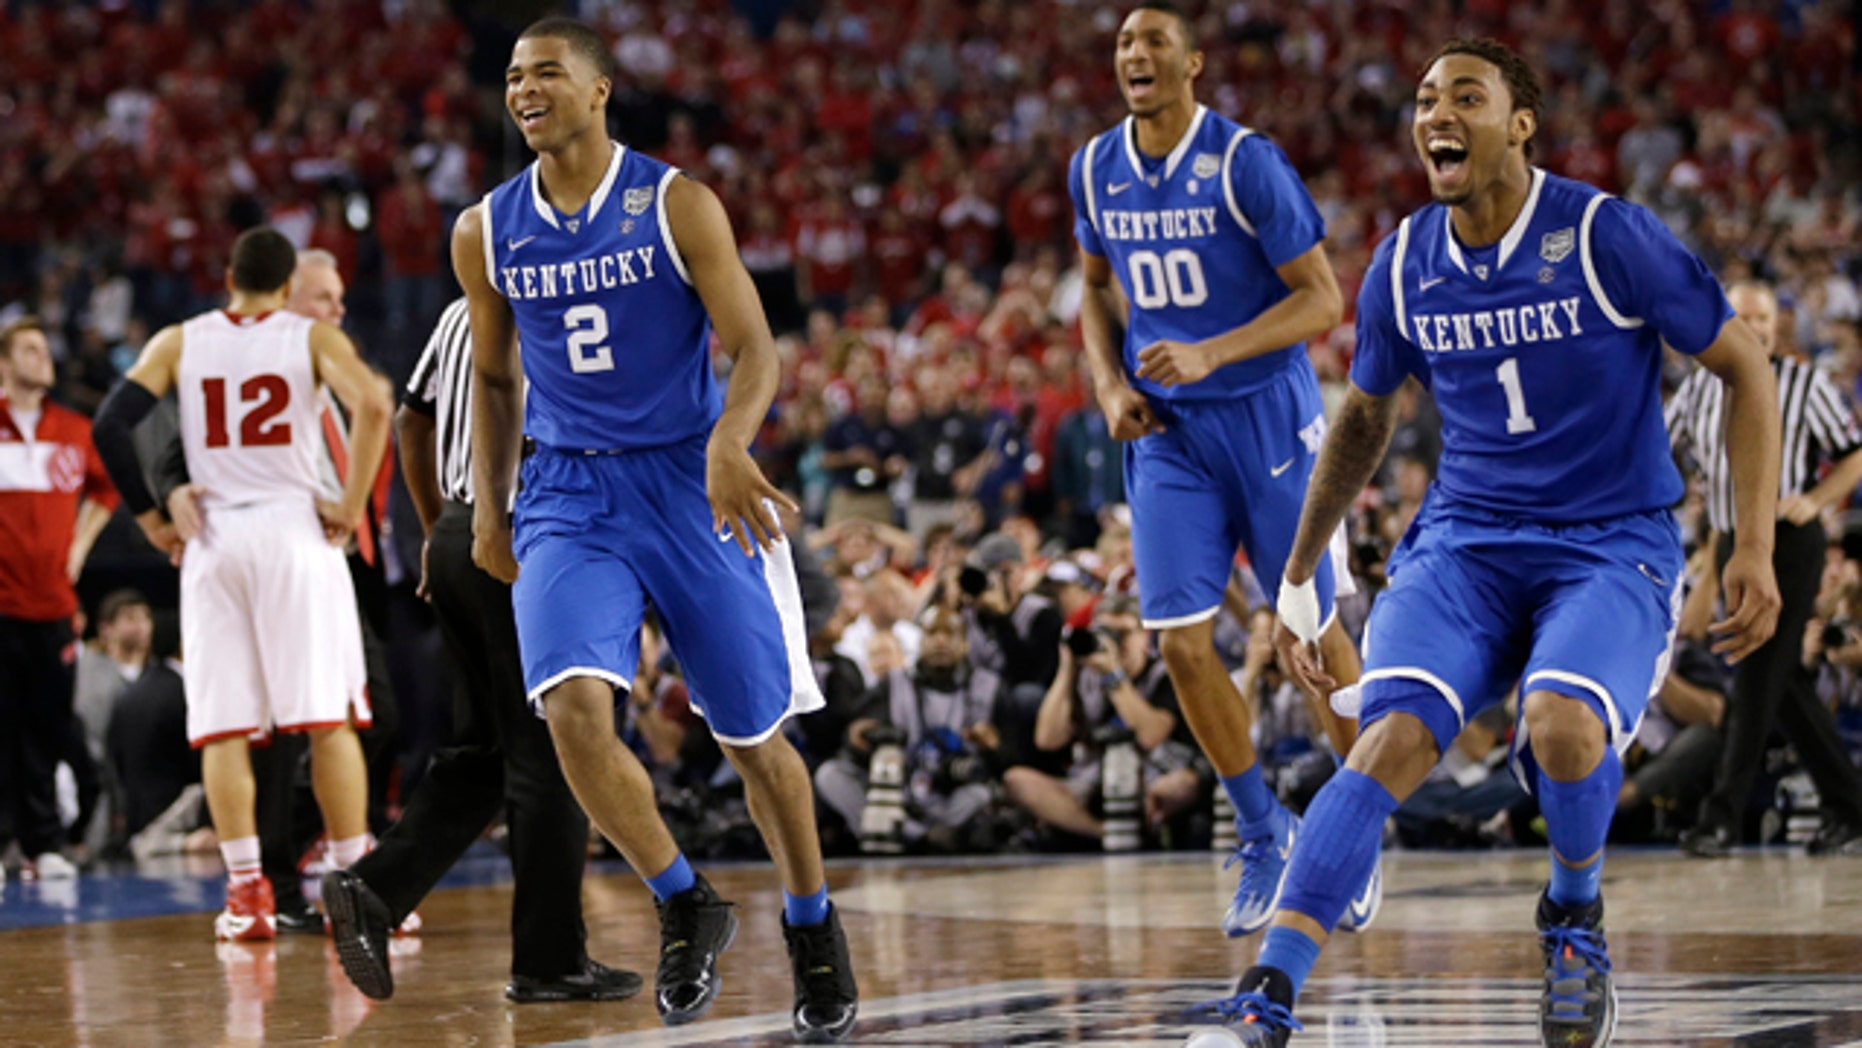 April 5, 2014: Kentucky's Aaron Harrison (2), Marcus Lee (00) and James Young, right, celebrate at the end of their 74-73 victory over Wisconsin in an NCAA Final Four tournament college basketball semifinal game in Arlington, Texas. (AP Photo/David J. Phillip)